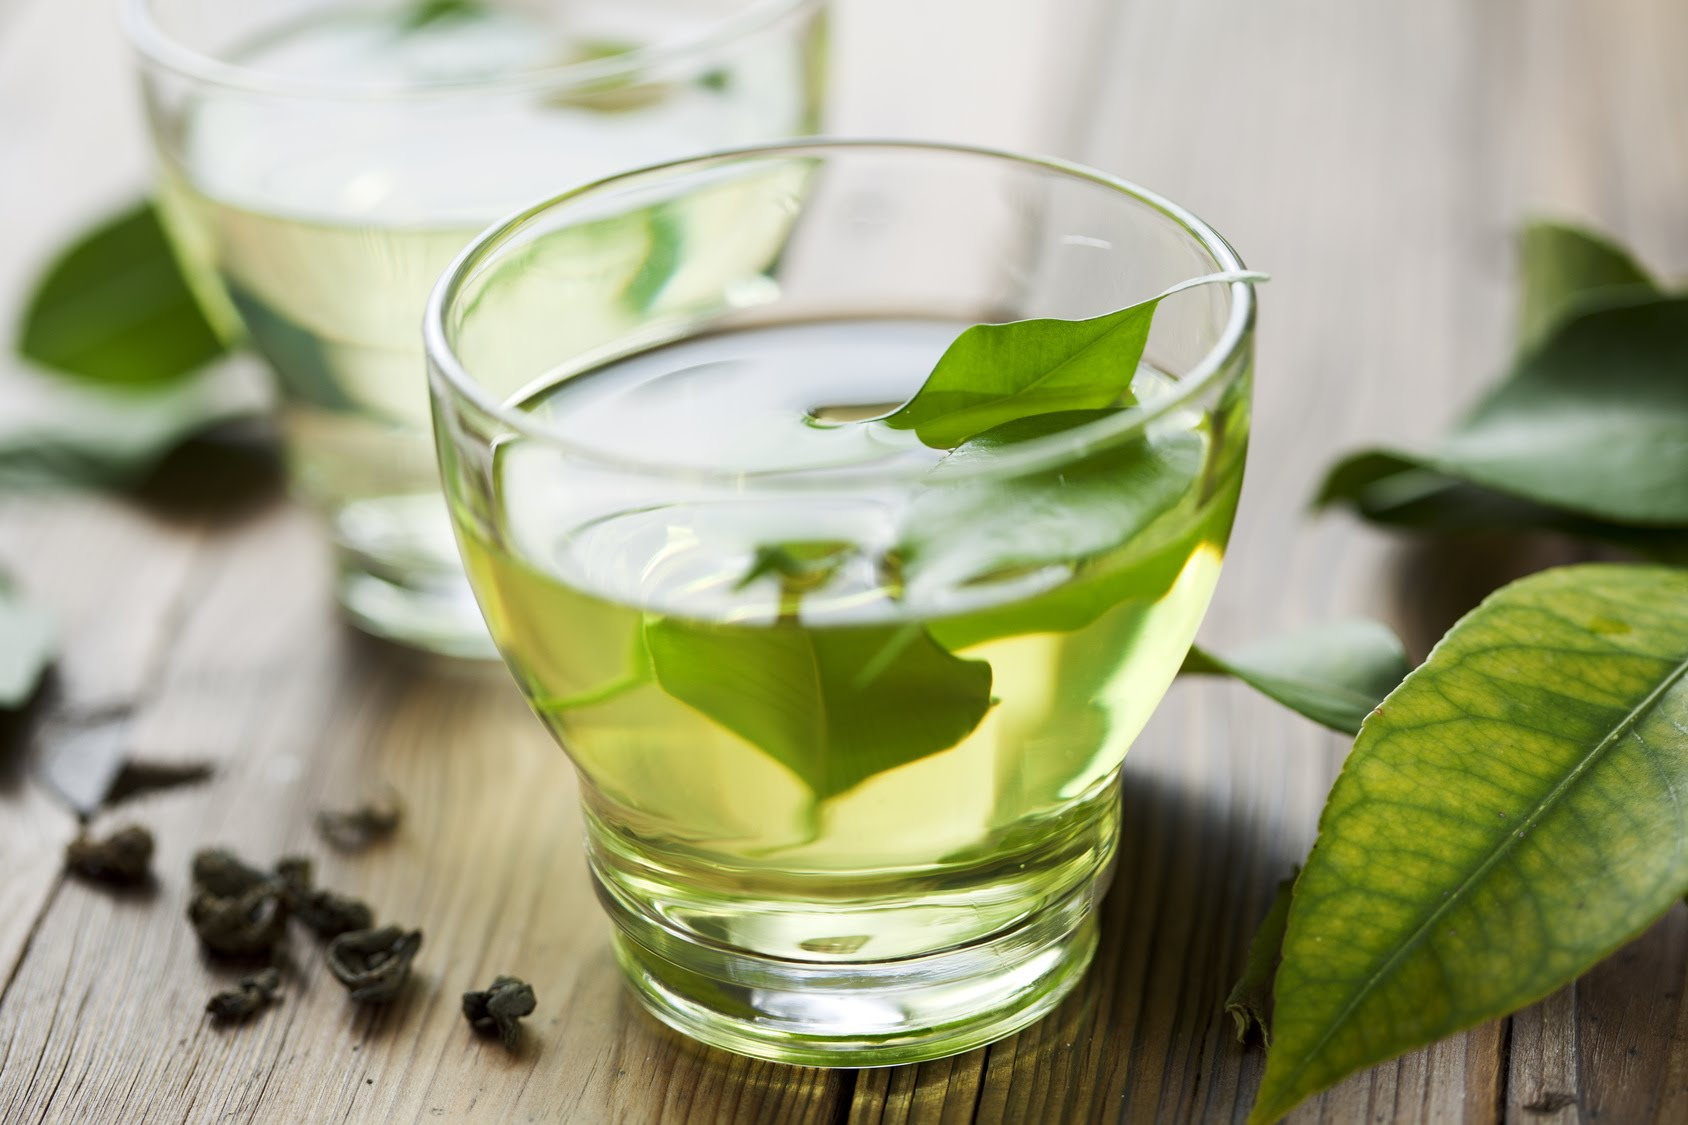 What's the benefit of drinking green tea